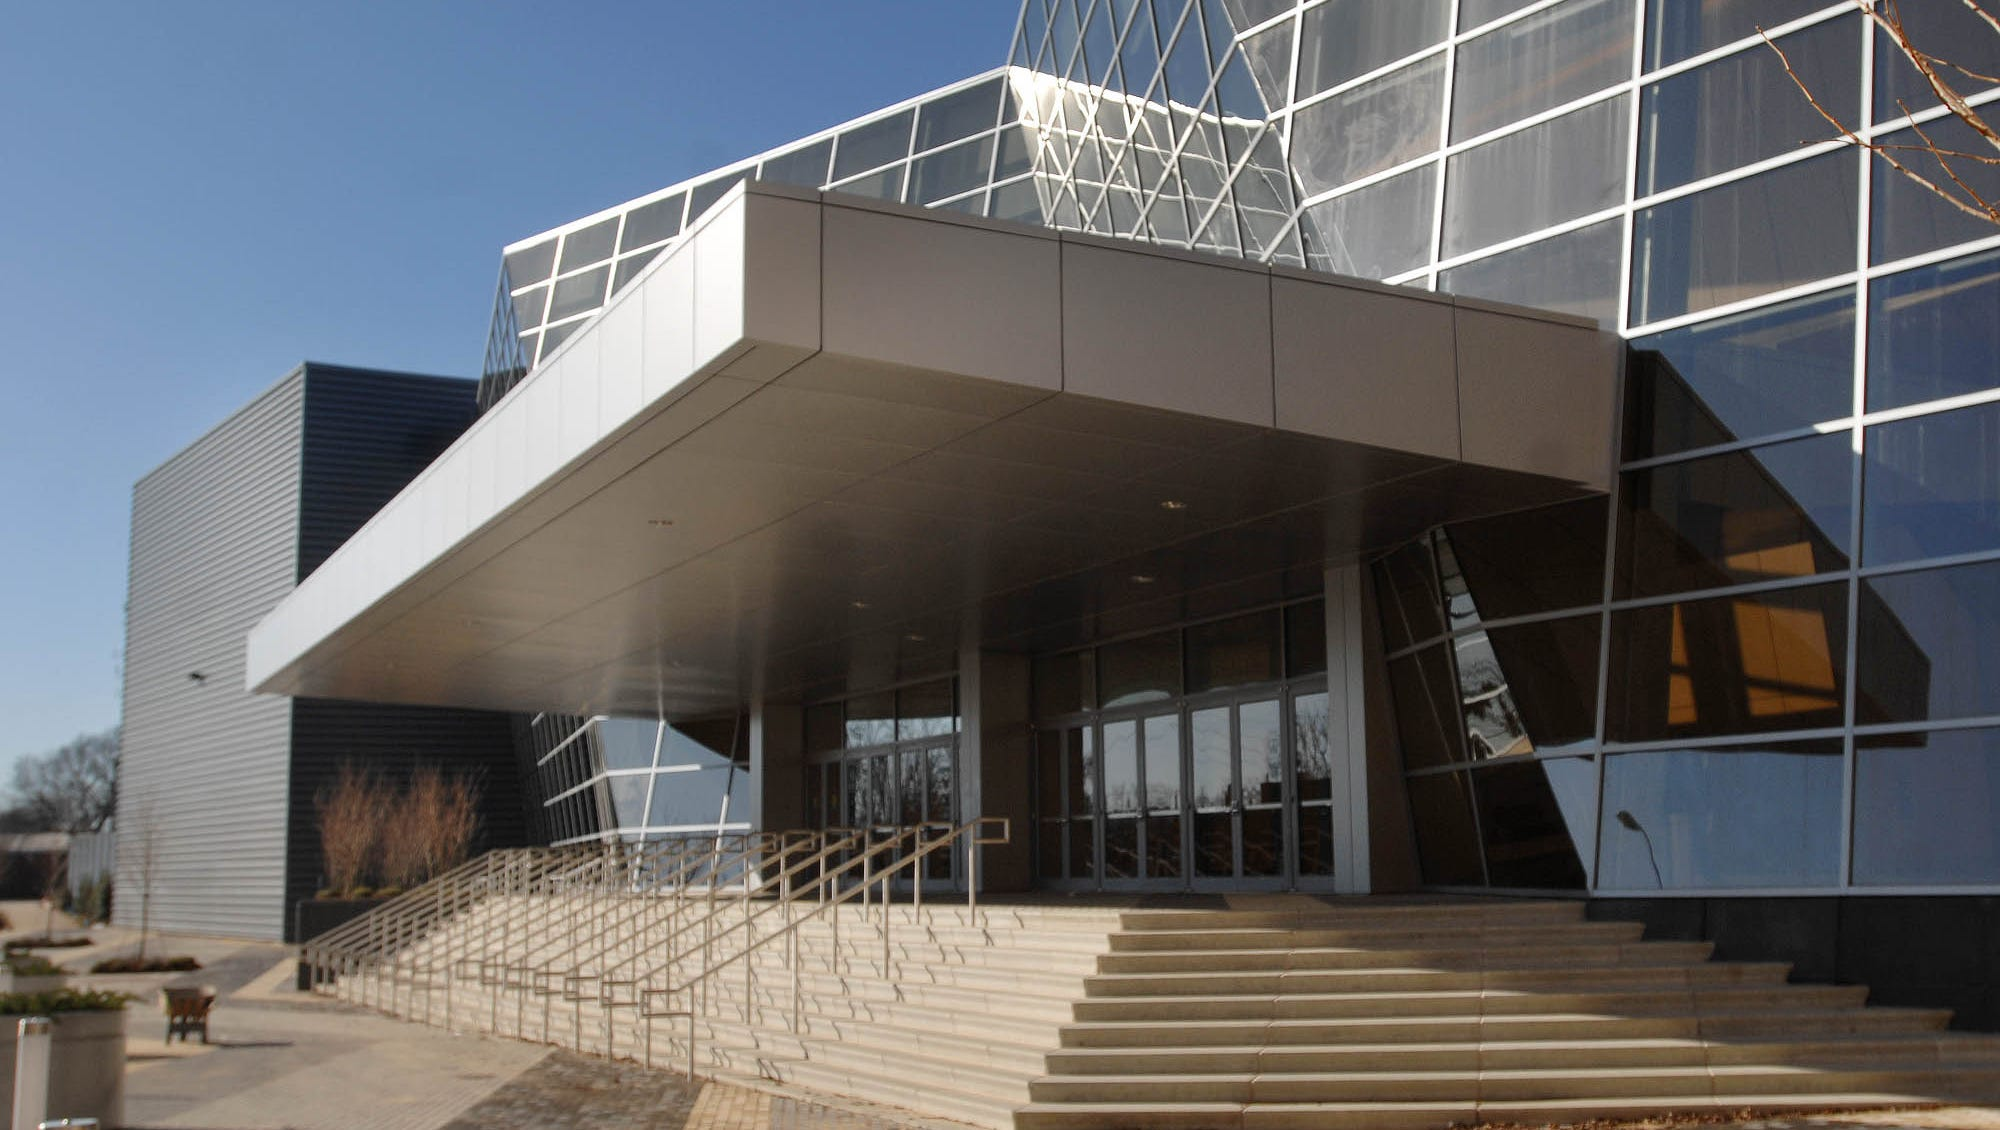 Convention Center: In search of a complex